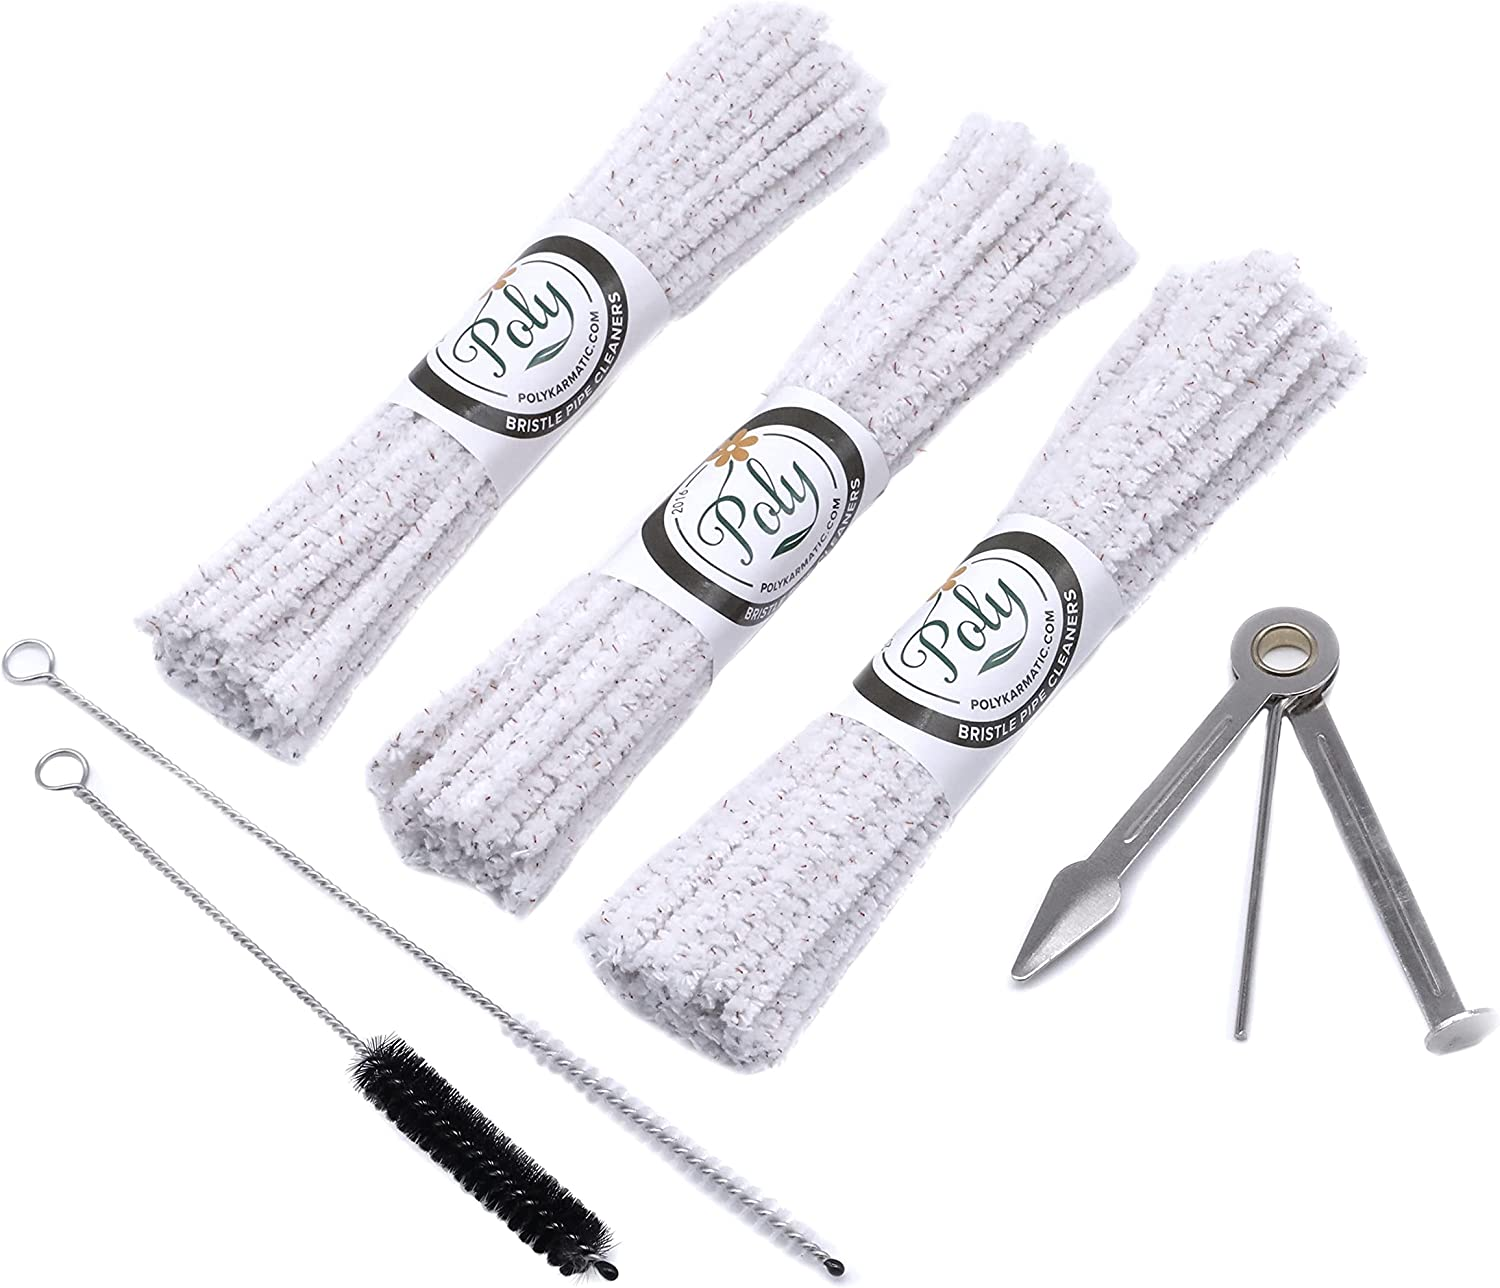 Pipe Cleaners Set with 132 2 B Bristle Clearance SALE! Limited time! Max 54% OFF Hard Nylon